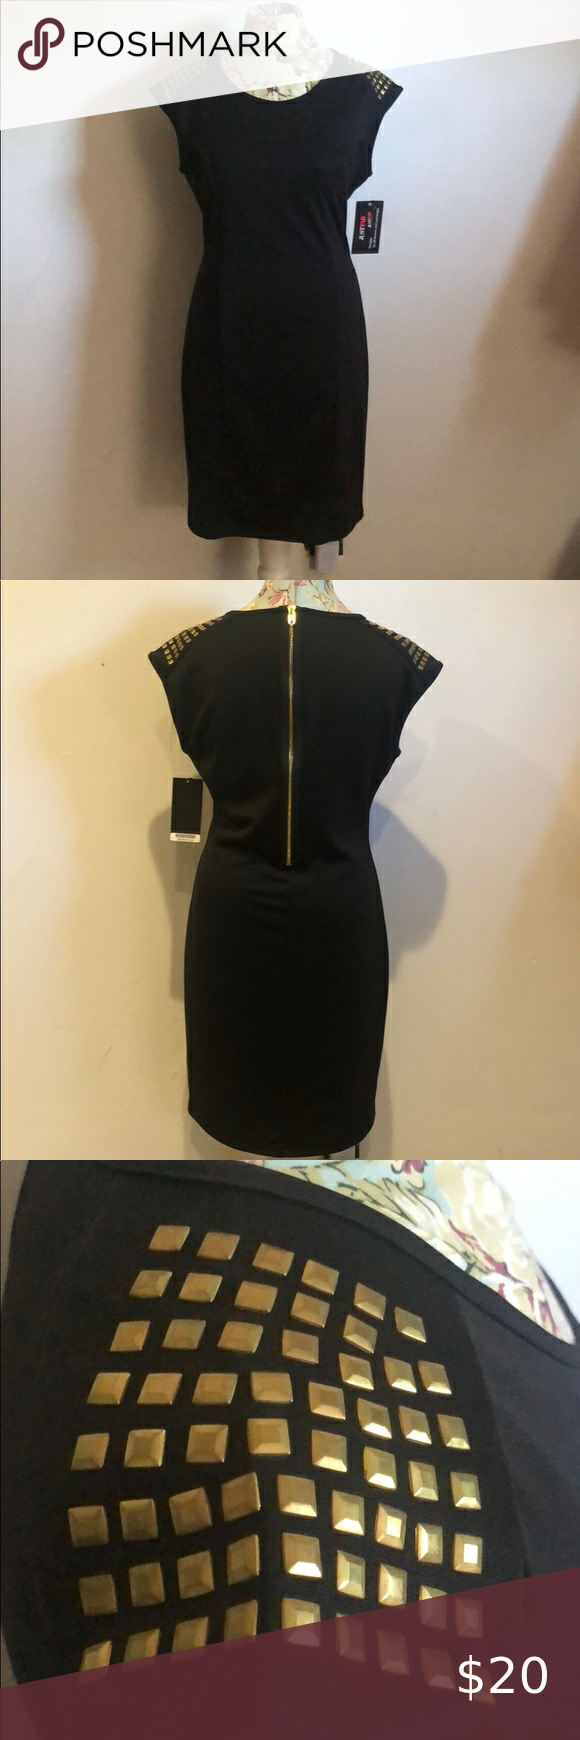 Black Dress With Gold Accents Black Knee Length Dress That Has Gold Detail And Gold Zipper In Back Dresses Mi Black Dress Black Knee Length Dress Black Knees [ 1740 x 580 Pixel ]